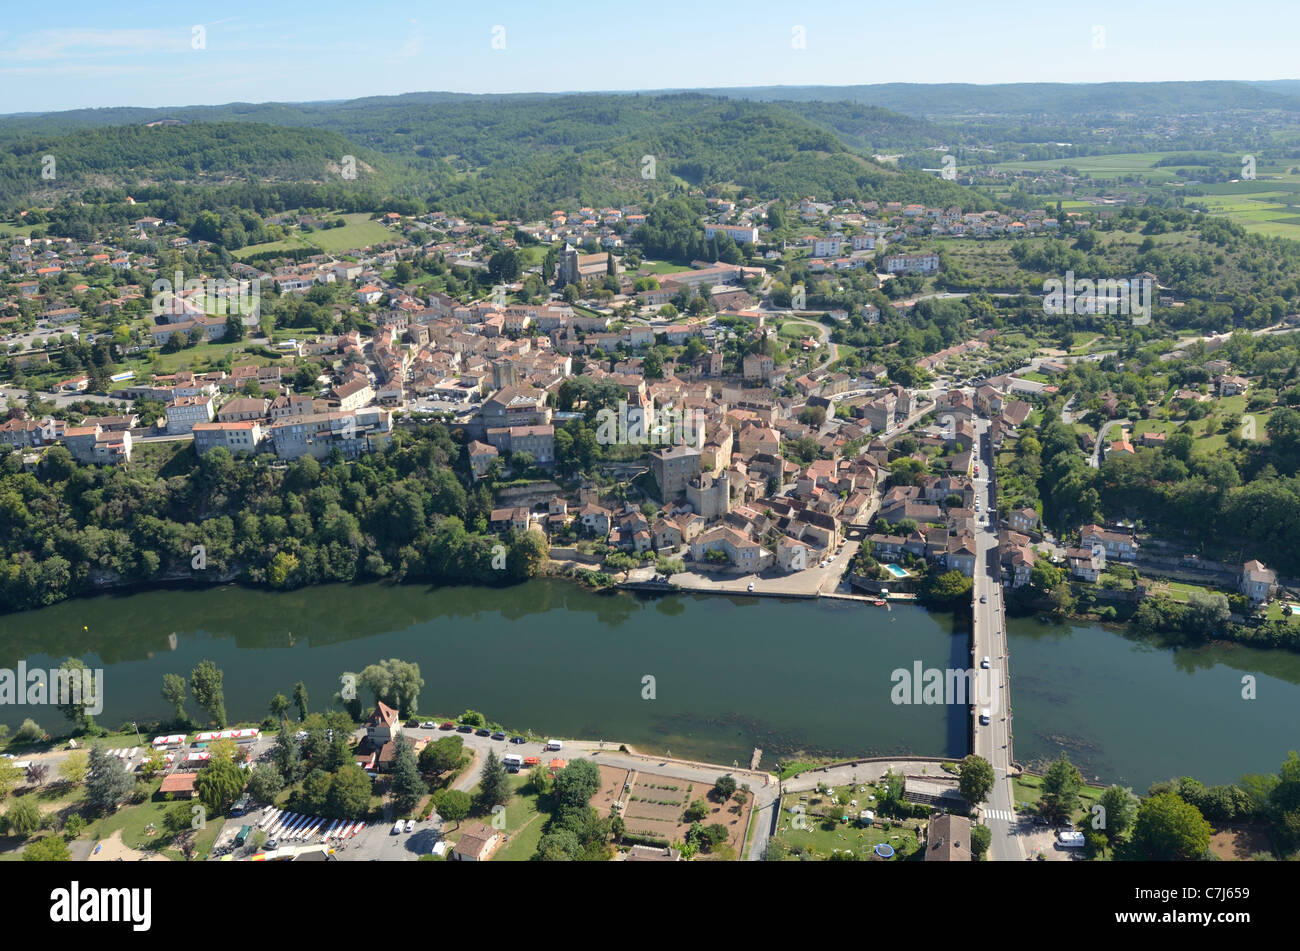 AERIAL VIEWS OF PUY-L'EVEQUE. MIDI-PYRENEES. FRANCE. - Stock Image